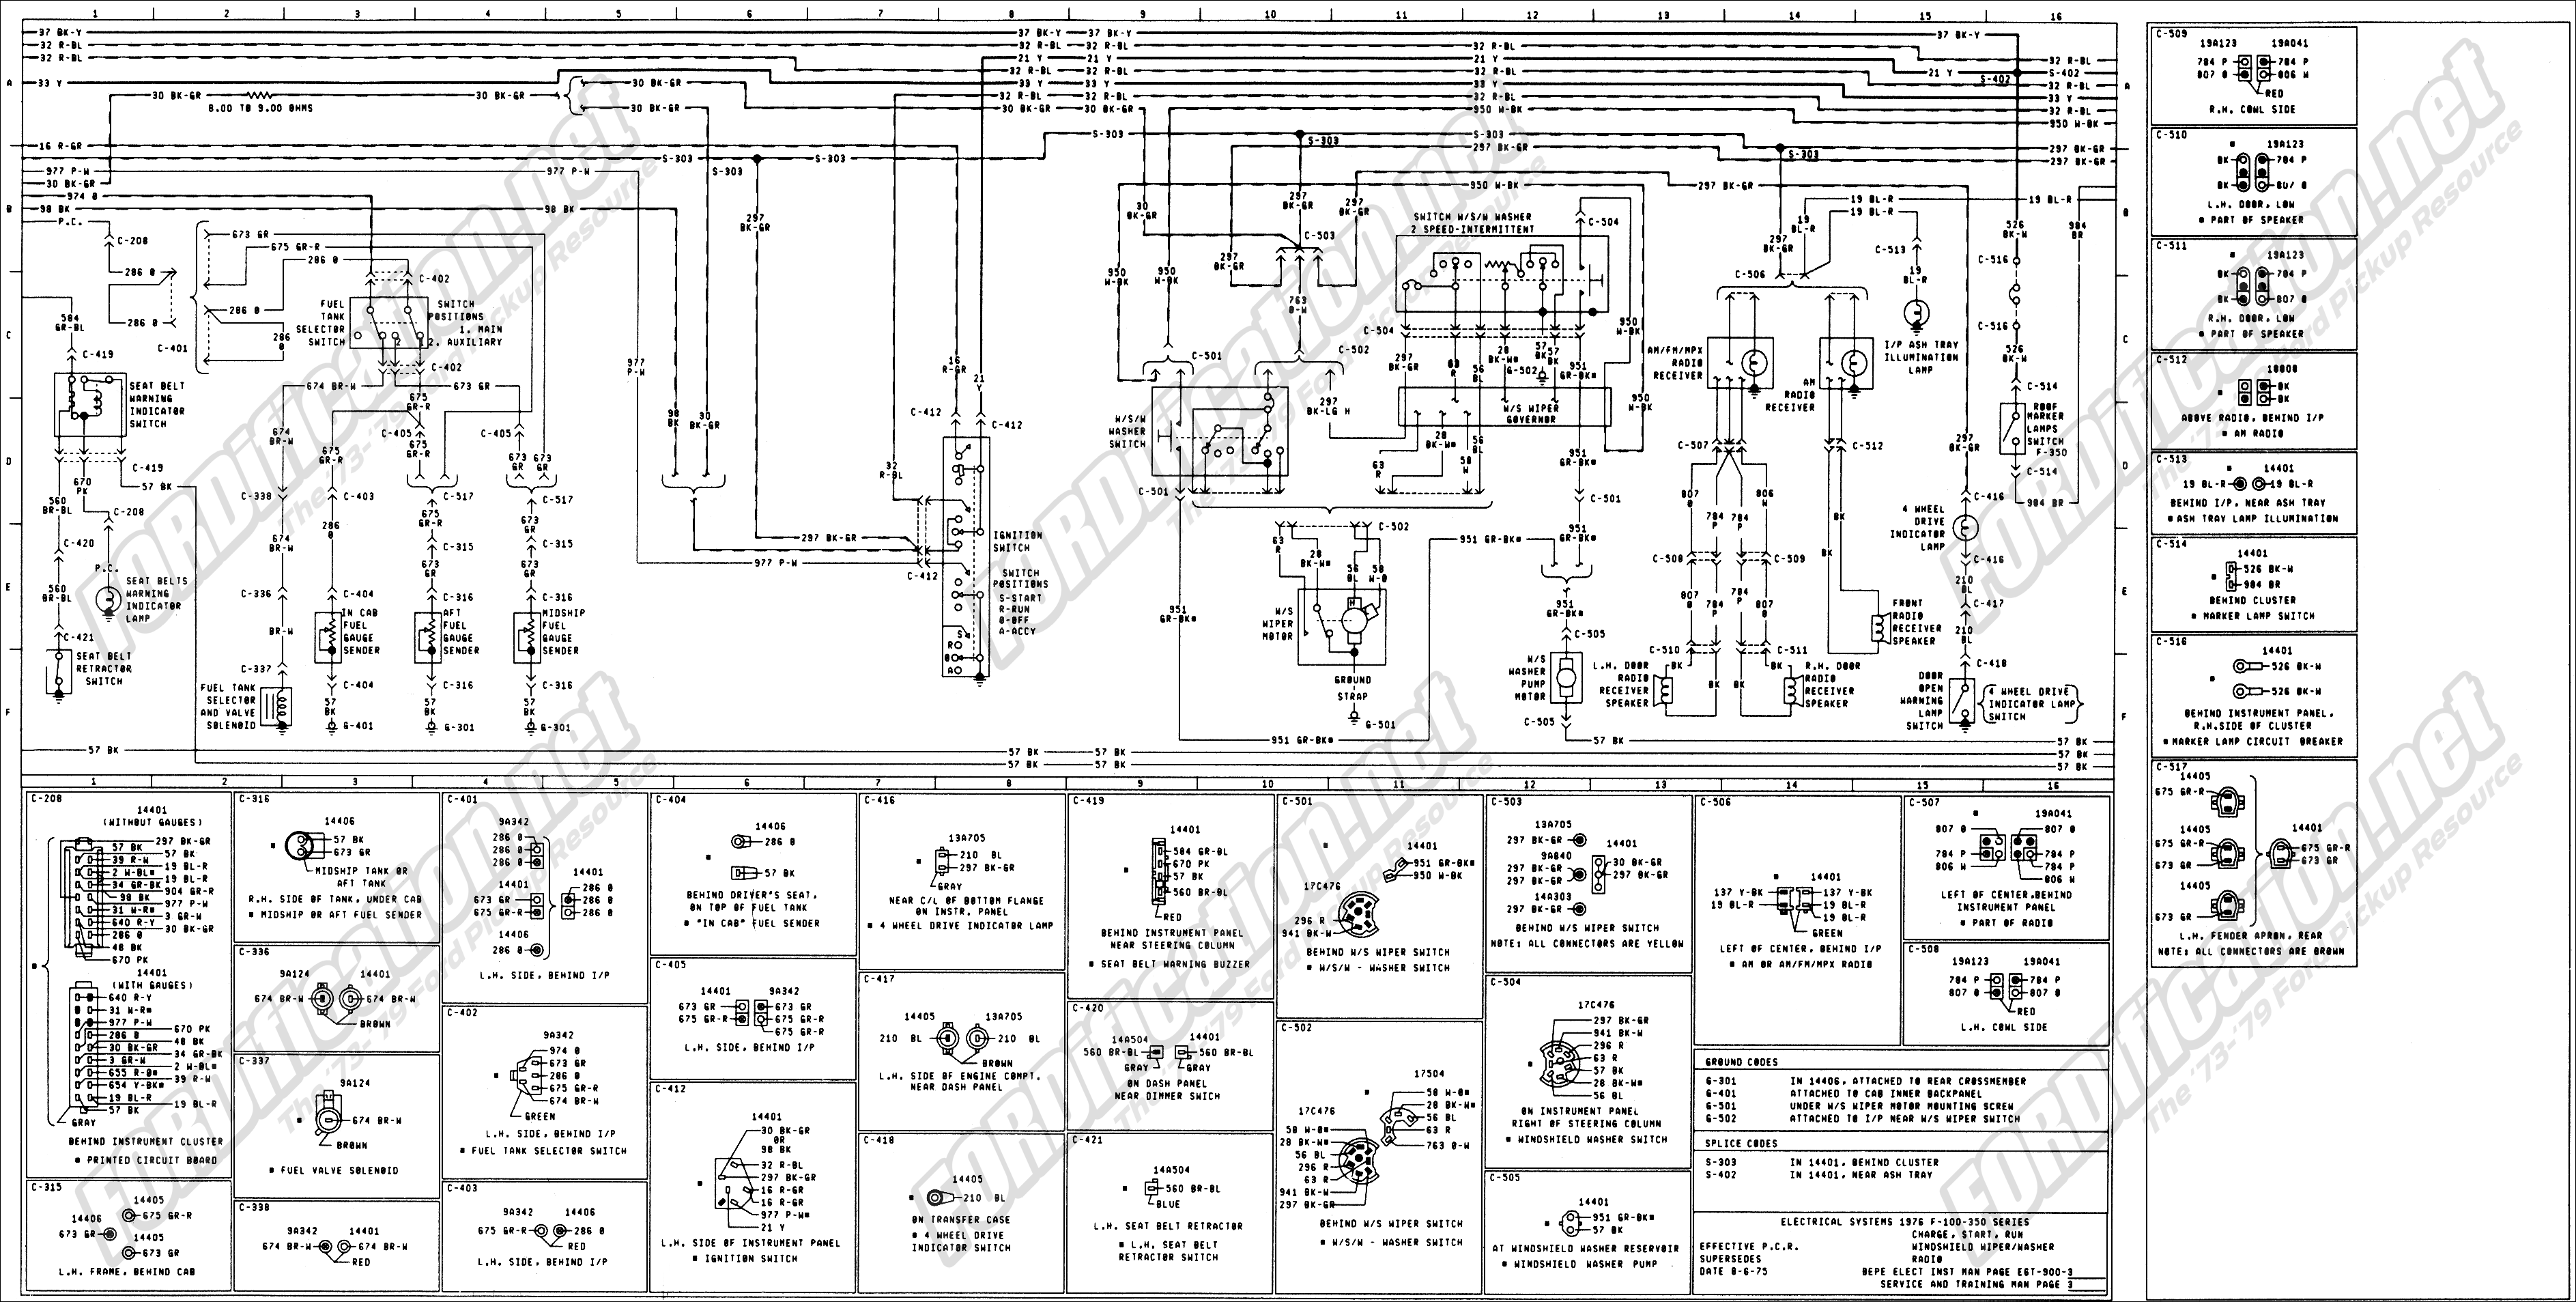 wiring_76master_3of9 1973 1979 ford truck wiring diagrams & schematics fordification net 2004 ford f750 fuse box diagram at mifinder.co